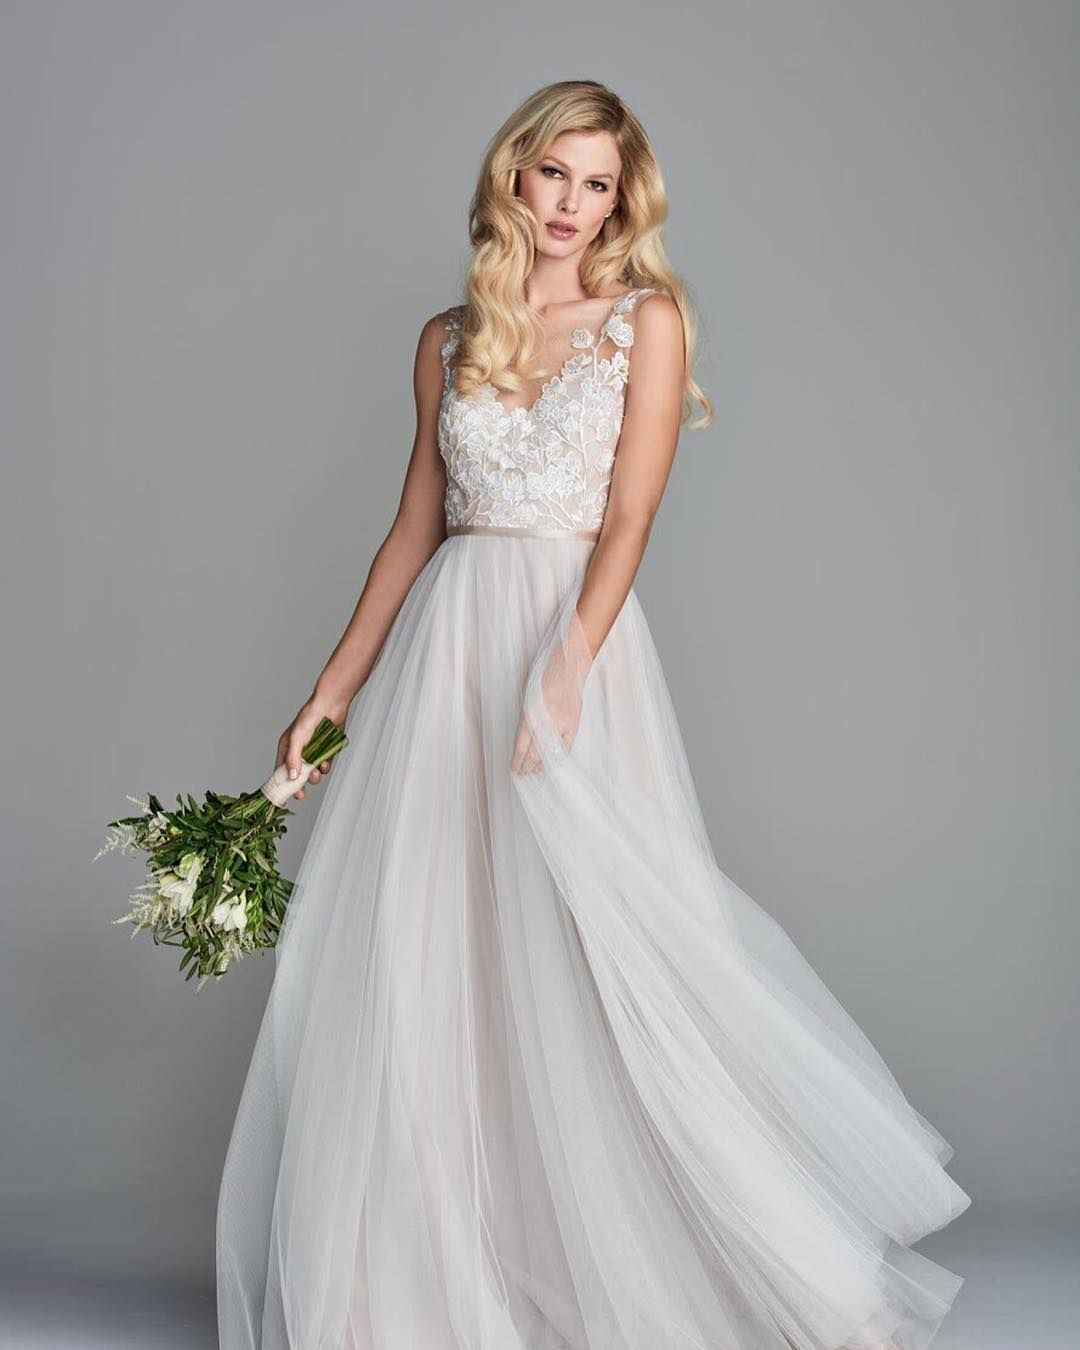 2a6f279483cf 1,222 Followers, 431 Following, 40 Posts - See Instagram photos and videos  from Wedding + Homecoming Dresses (@lillasbridal)